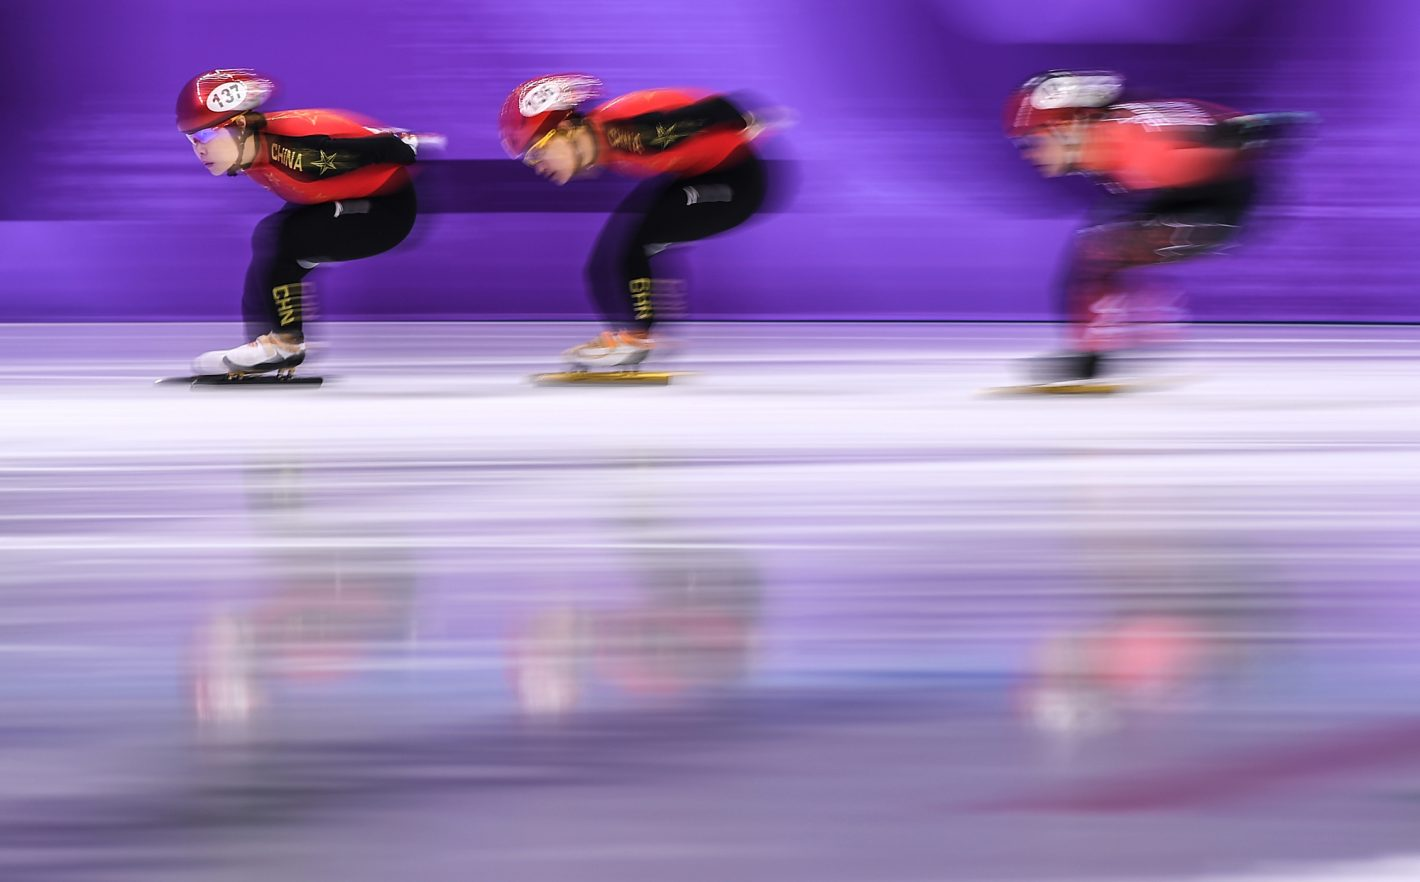 Two Chinese skaters in relaying area during the Women's 3,000m relay qualifier on February 10, 2018. Nikon D5 | AF-S NIKKOR 300mm f/2.8G ED VR II | ISO 50 | 1/13 s | f/6.3 Copyright: An Ling Jung / China Sports